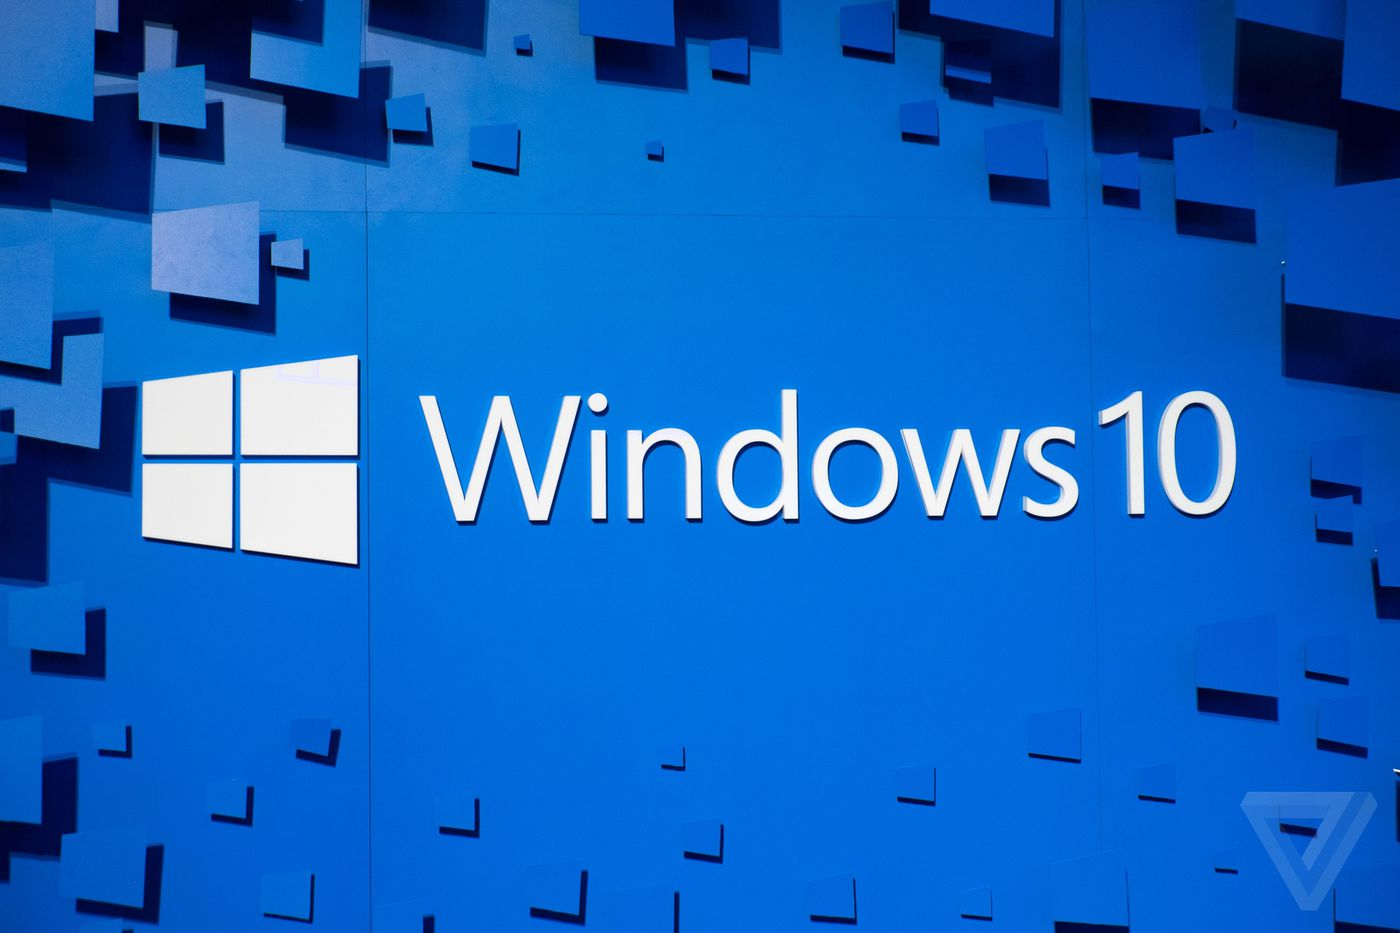 Windows 10 AIO 20H1 (2004) Update September 2020